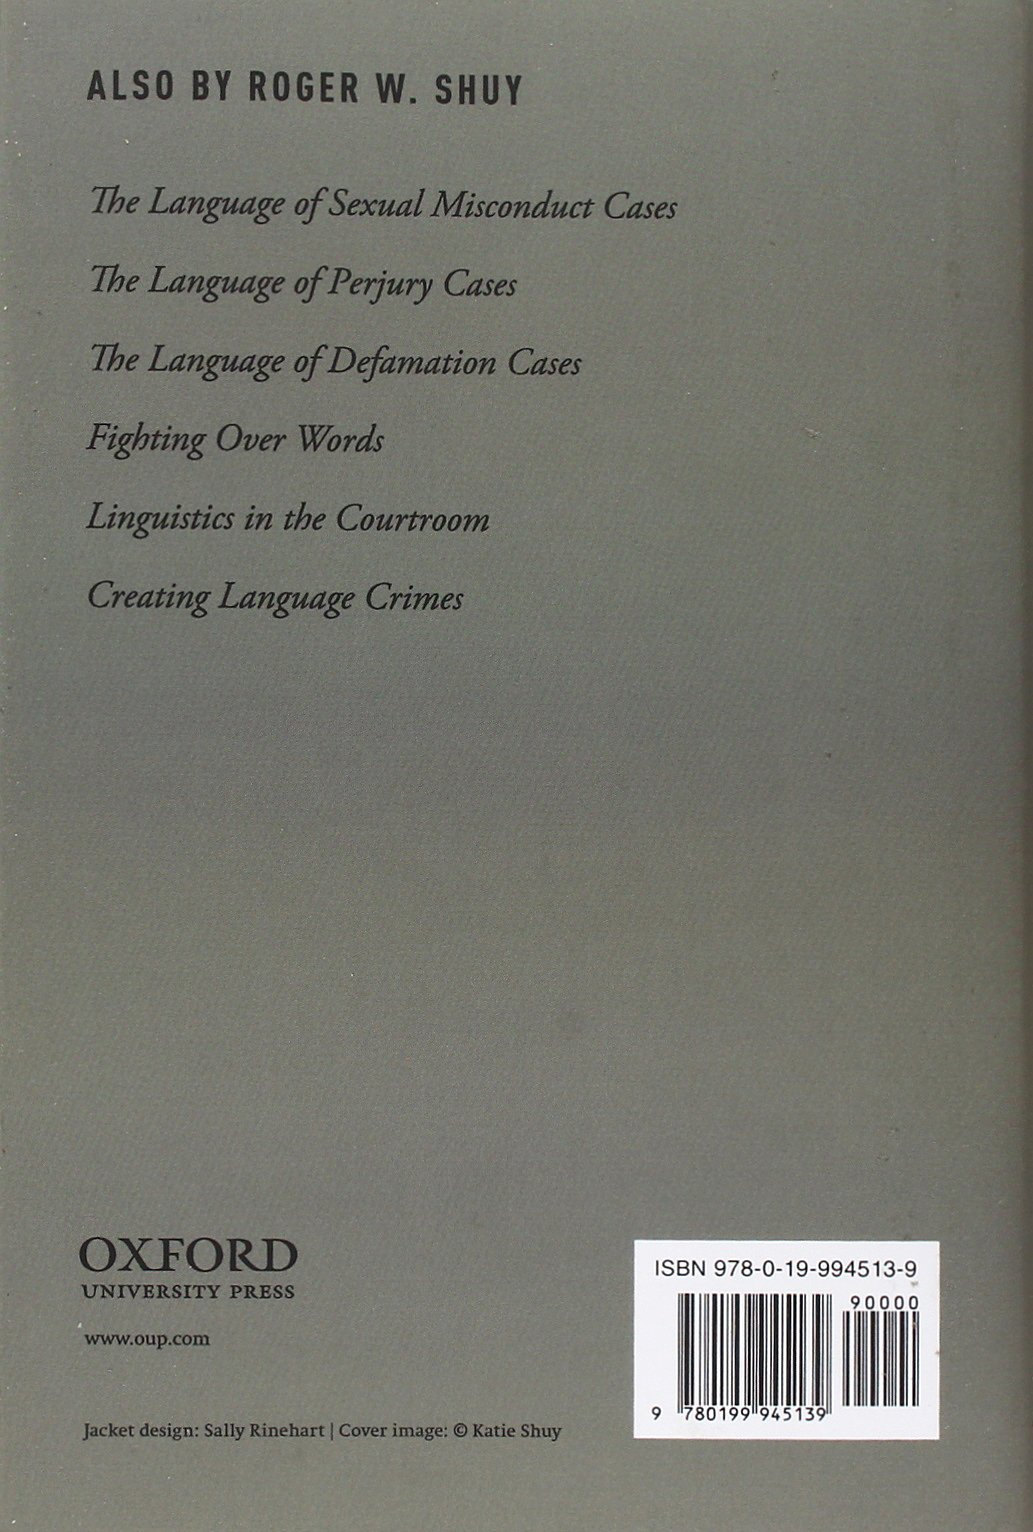 The Language of Bribery Cases (Oxford Studies in Language and Law) by Oxford University Press